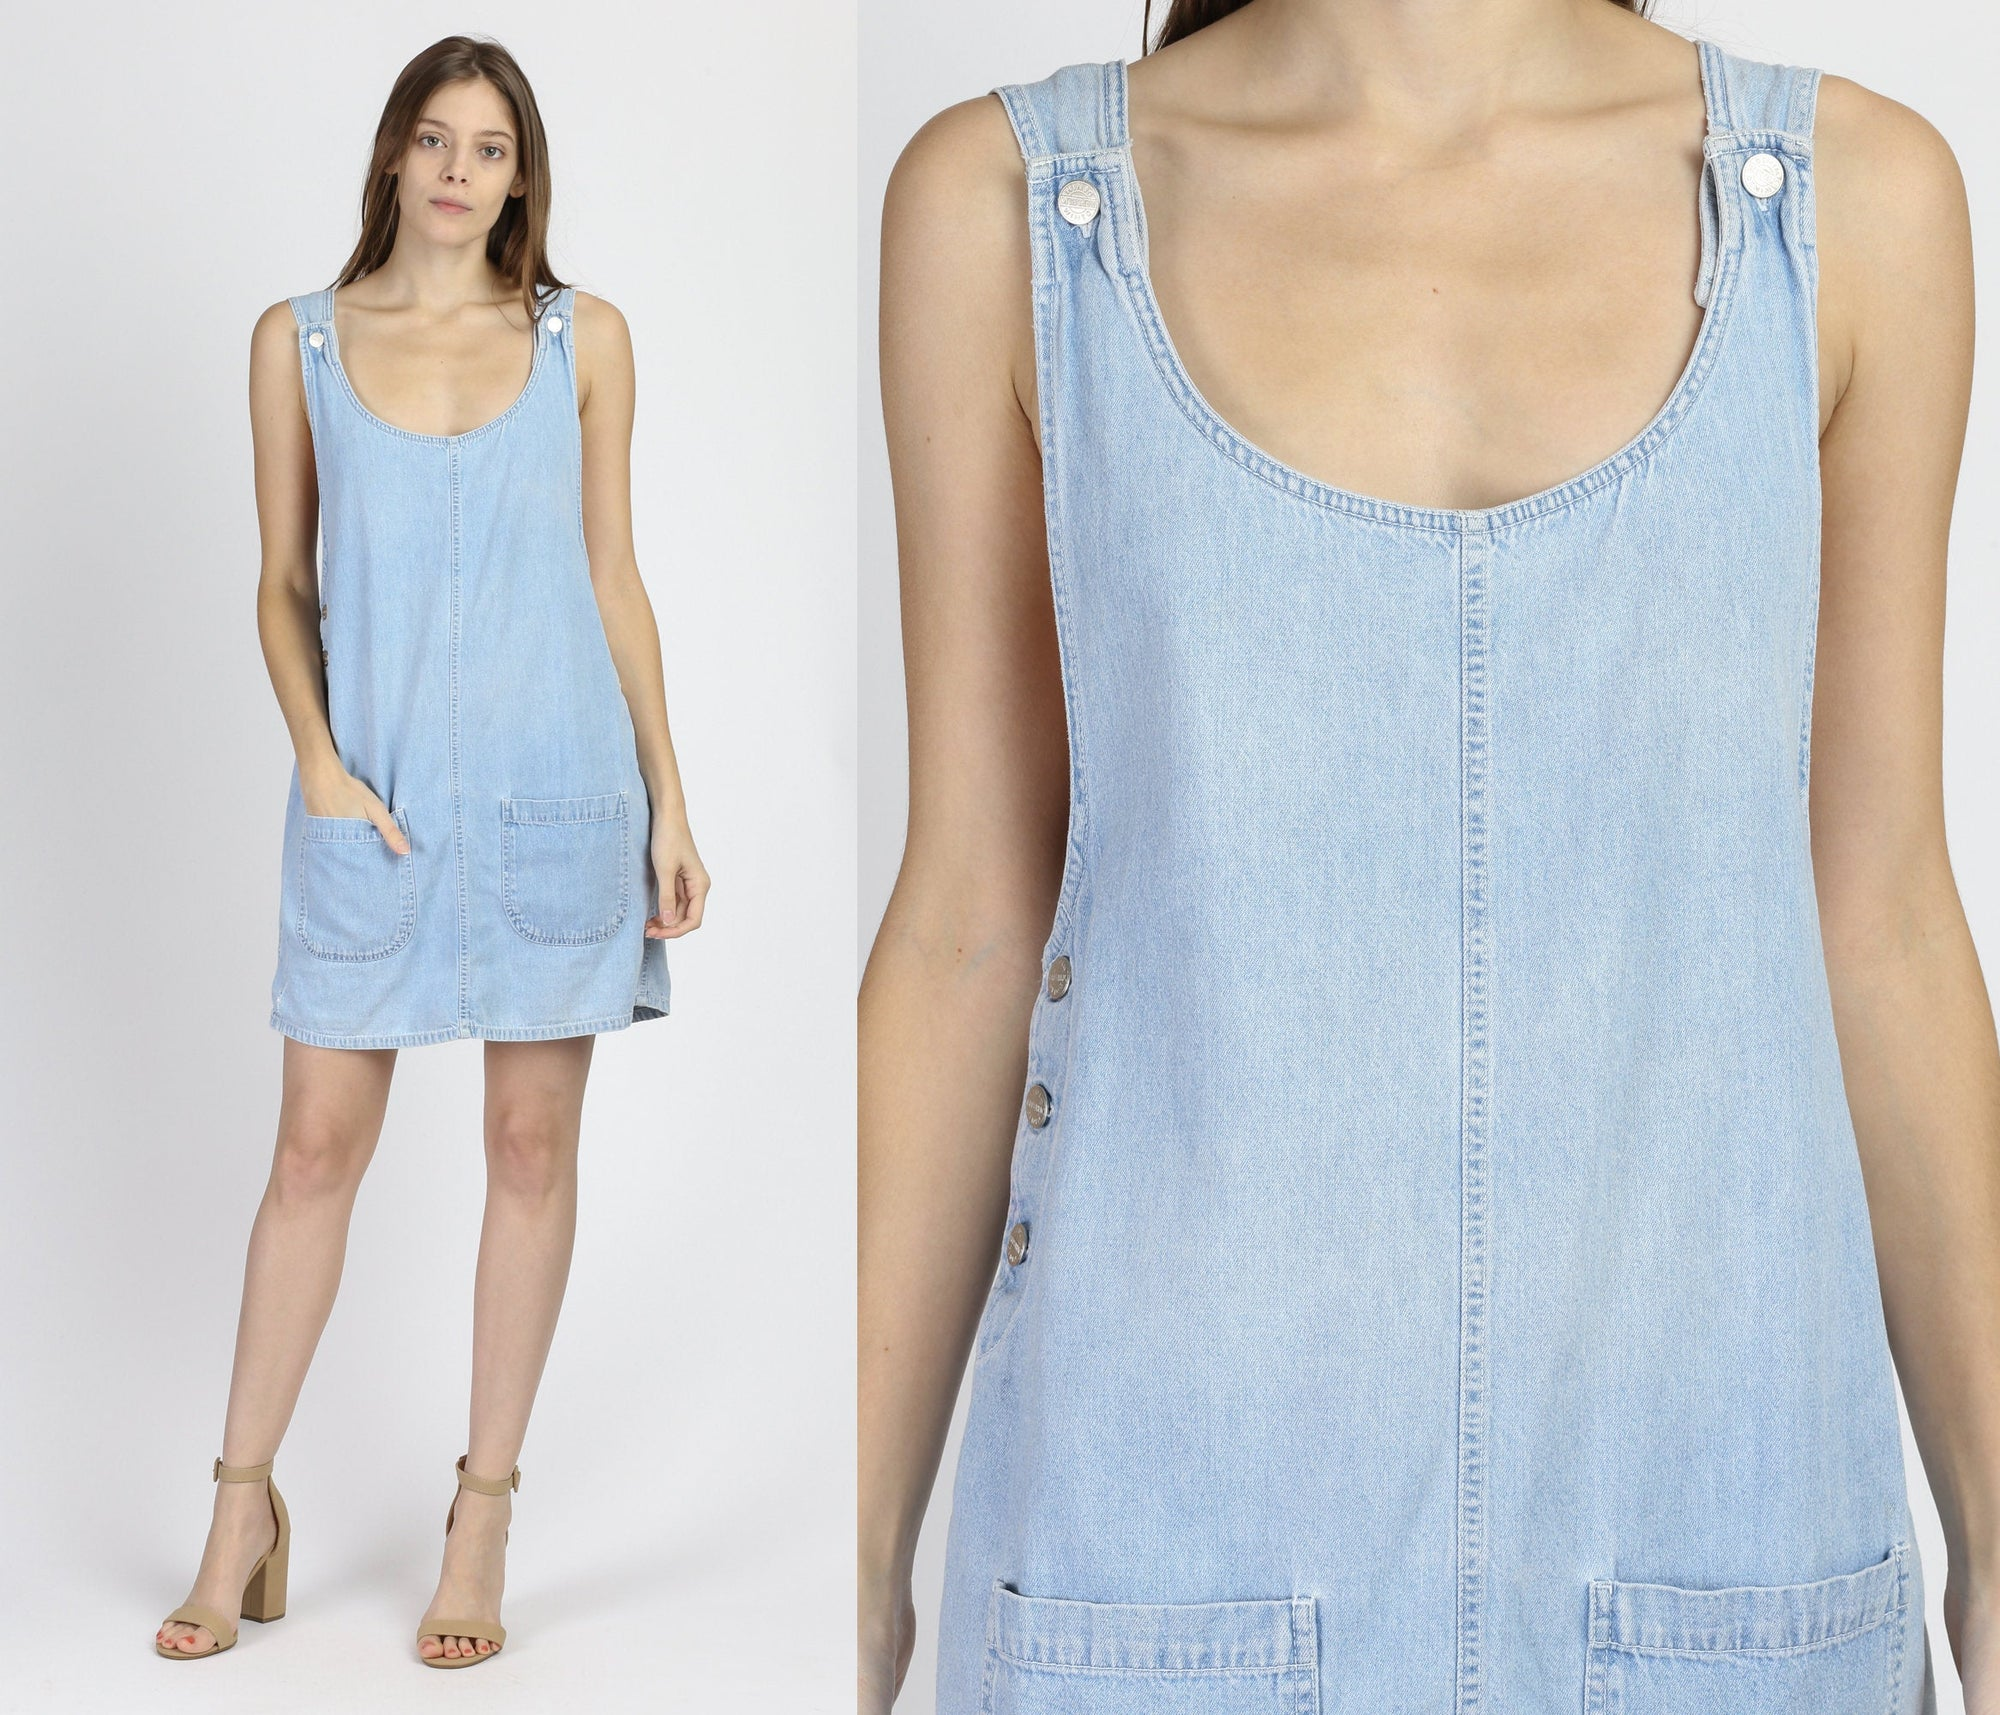 90s Denim Mini Pinafore - Medium